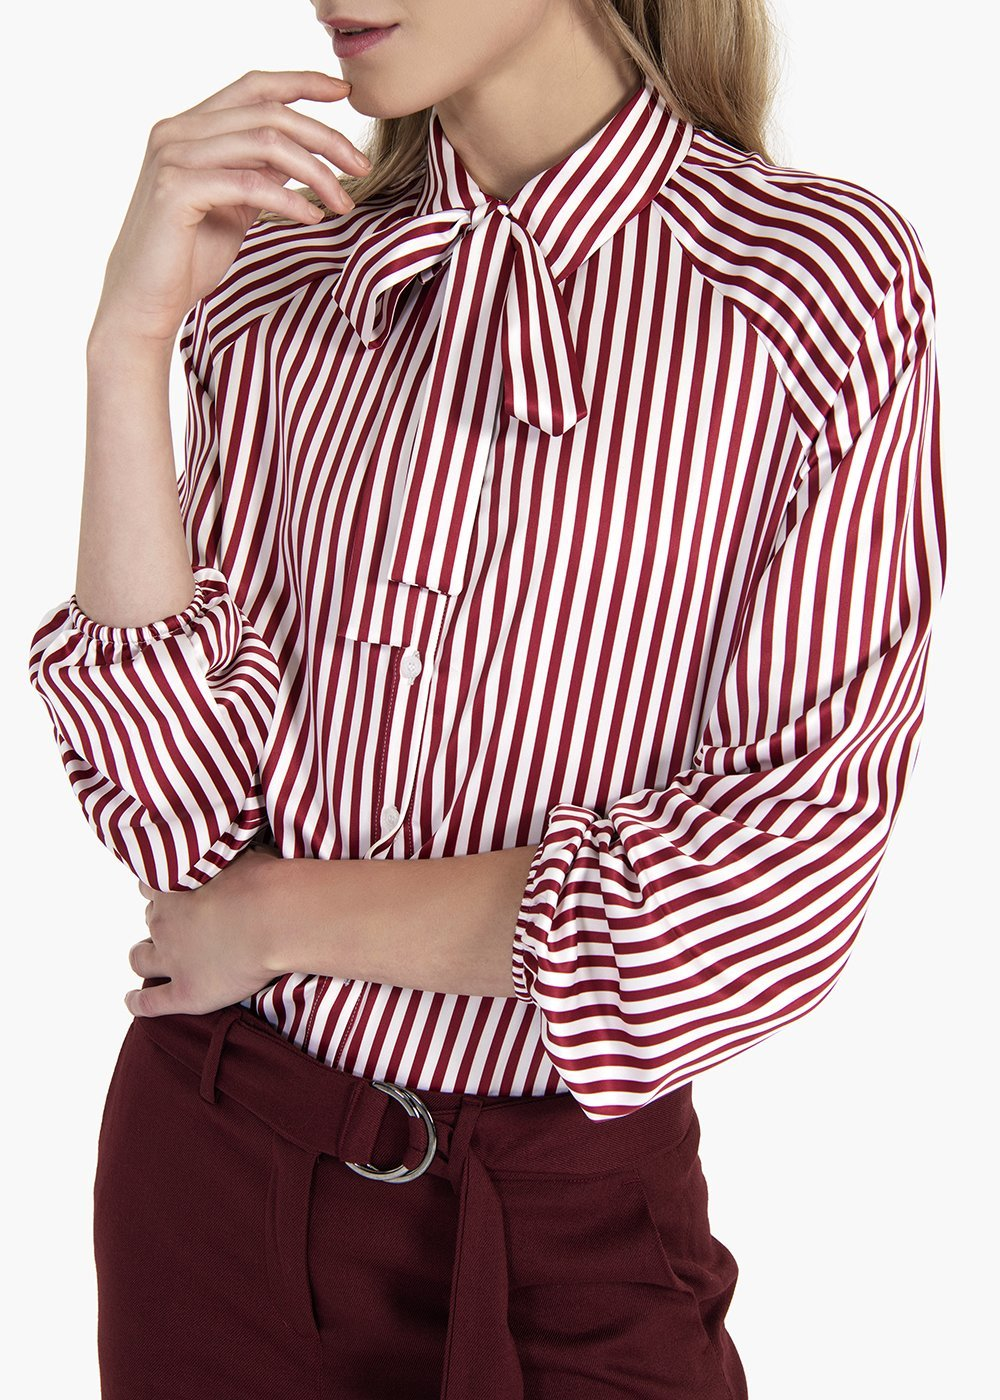 Striped blouse Carla with scarf - White / Amarena Stripes - Woman